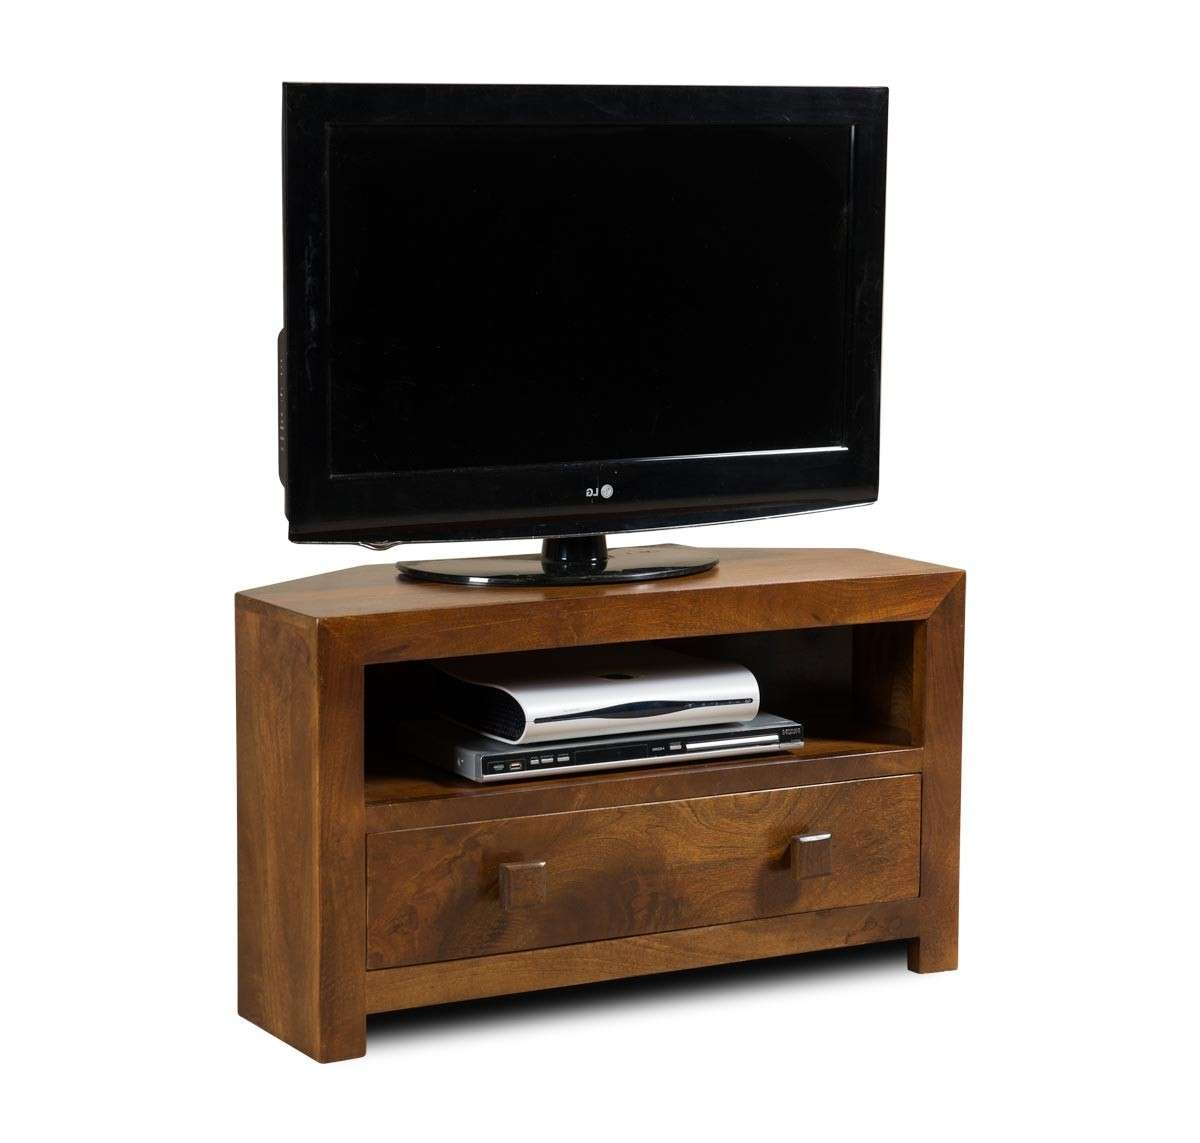 Wooden Corner Tv Stand With Fireplace Decofurnish Inspirations Throughout Dark Wood Corner Tv Stands (View 15 of 15)